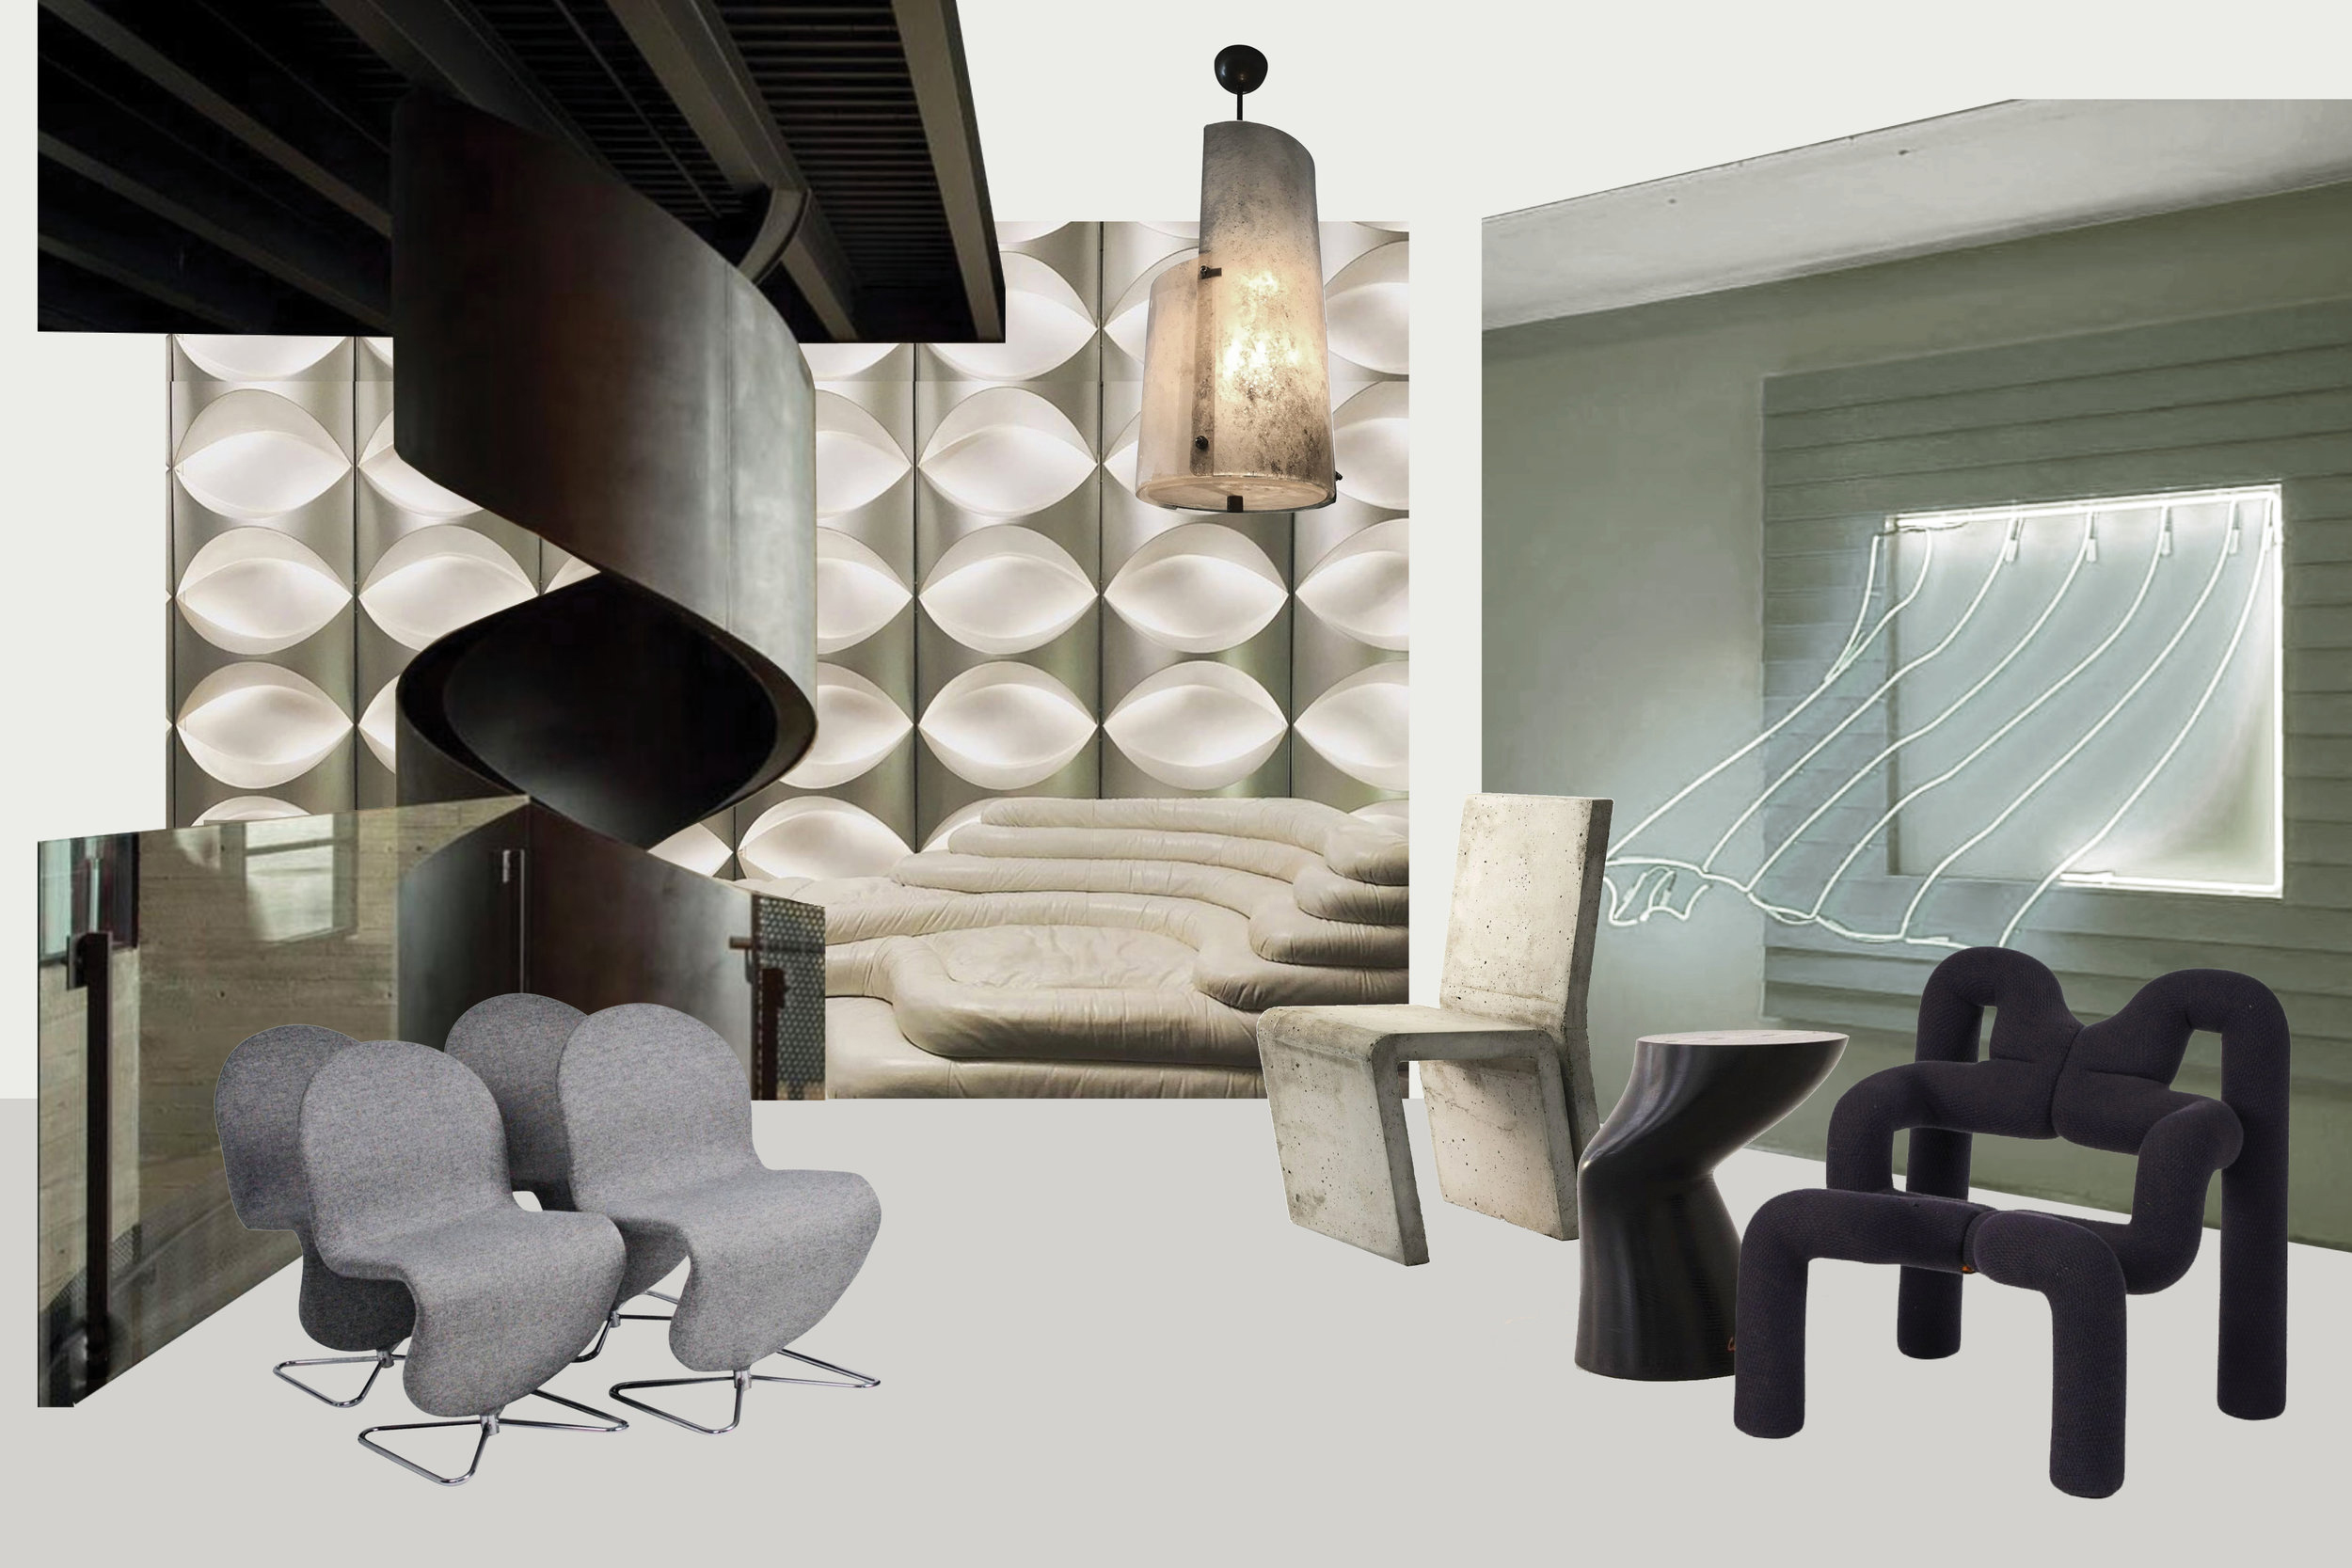 Concepts of Studio S II products